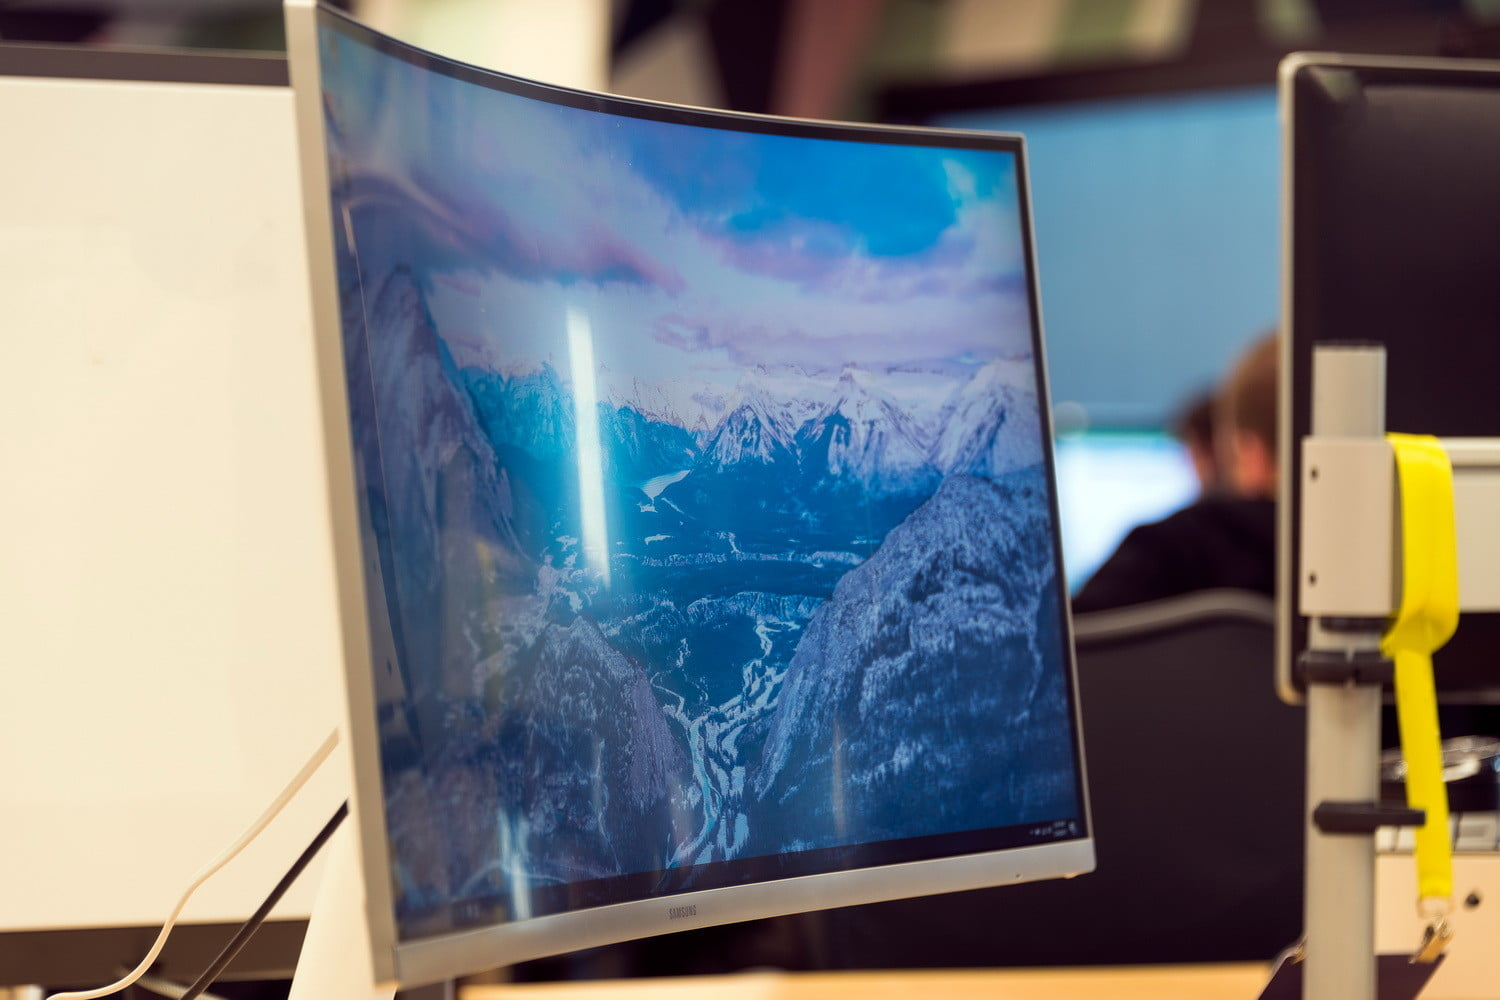 Samsung Cf791 Ultrawide Monitor Review Digital Trends